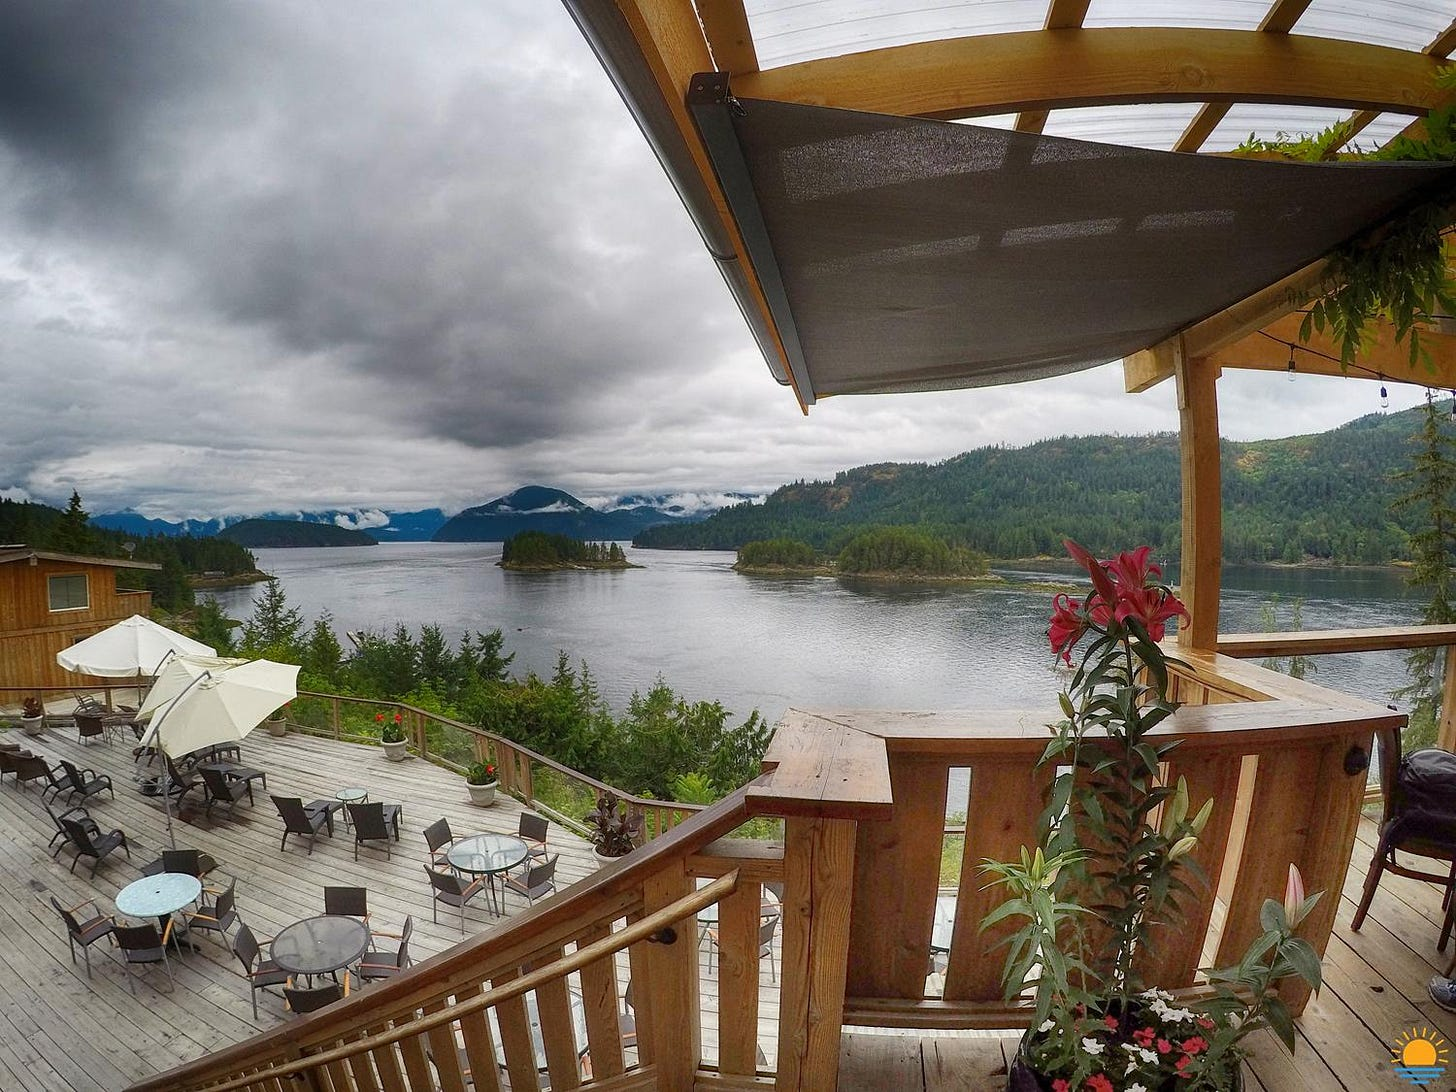 Even on an overcast day, the view from the deck at West Coast Wilderness Lodge is incredible.